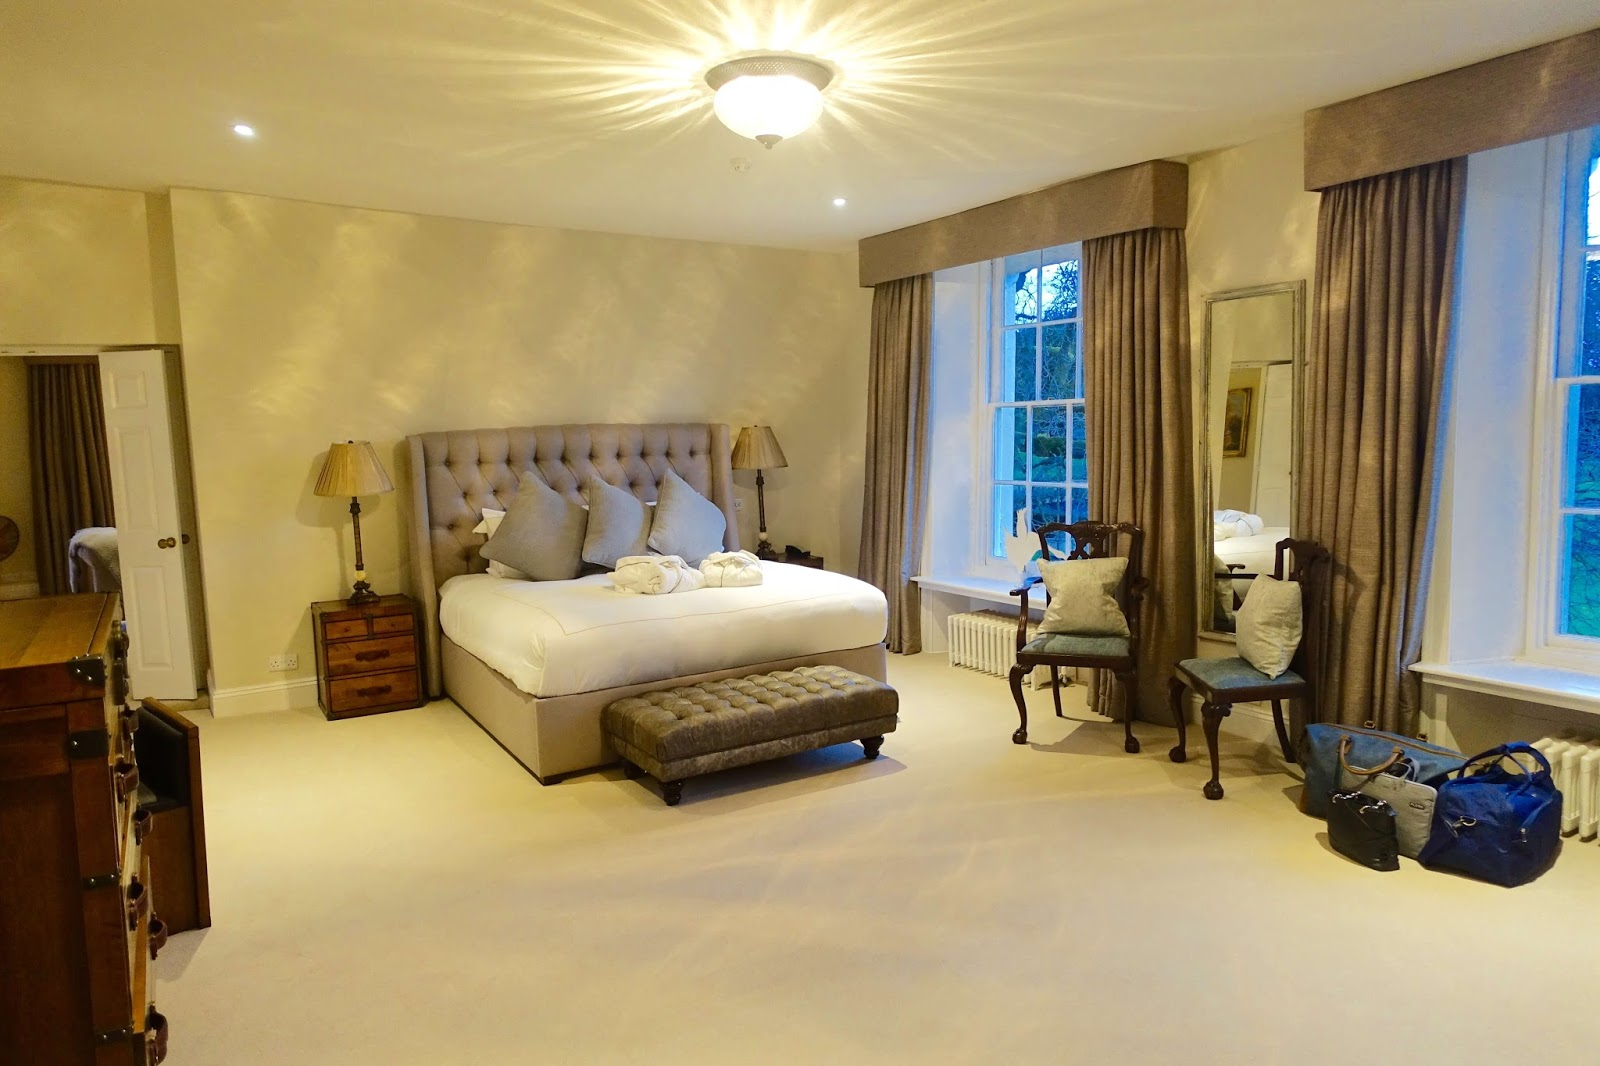 sudbury house hotel luxury 4 star accommodation